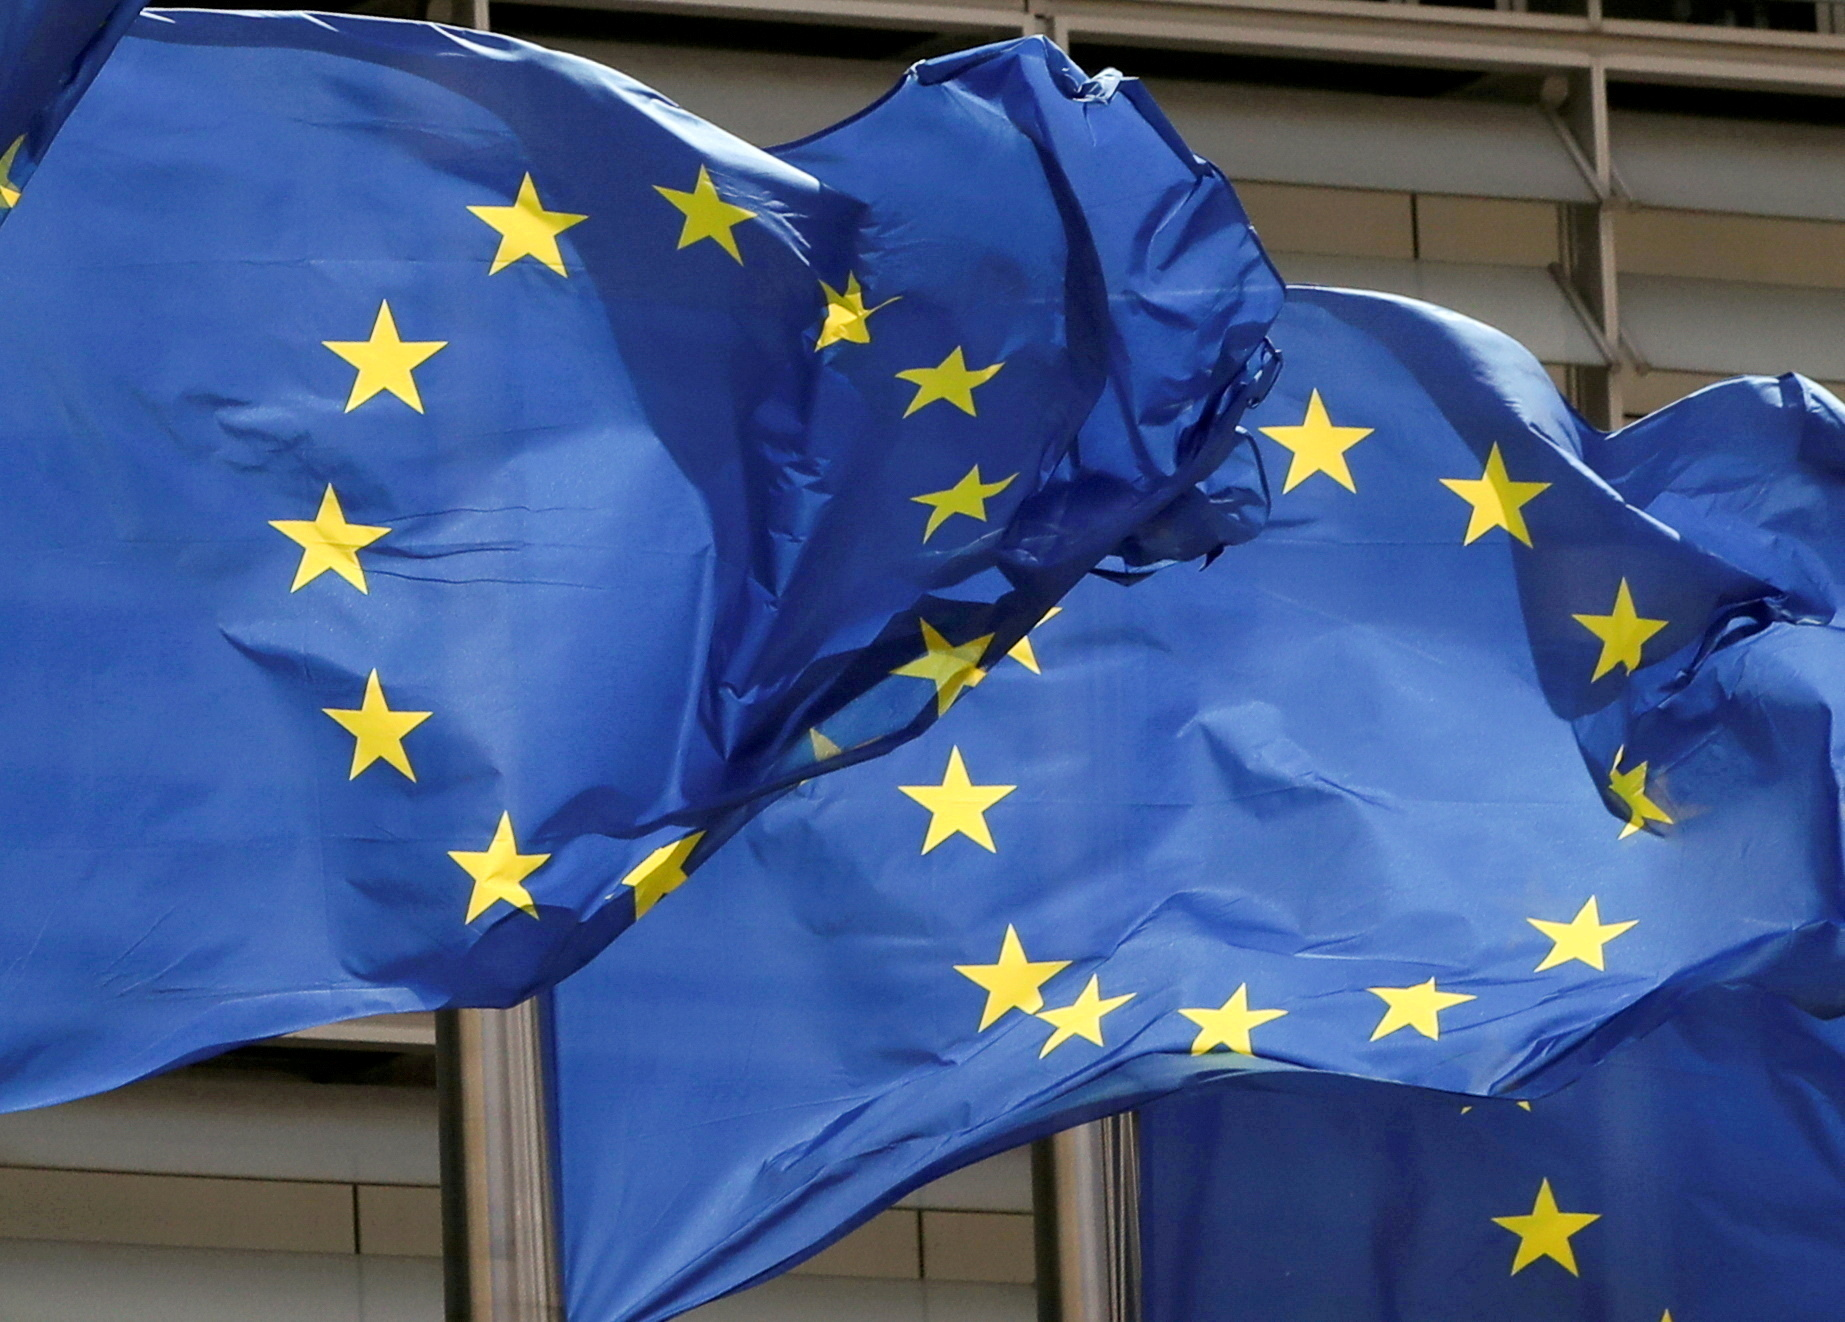 European Union flags flutter outside the EU Commission headquarters in Brussels, Belgium May 5, 2021. REUTERS/Yves Herman//File Photo